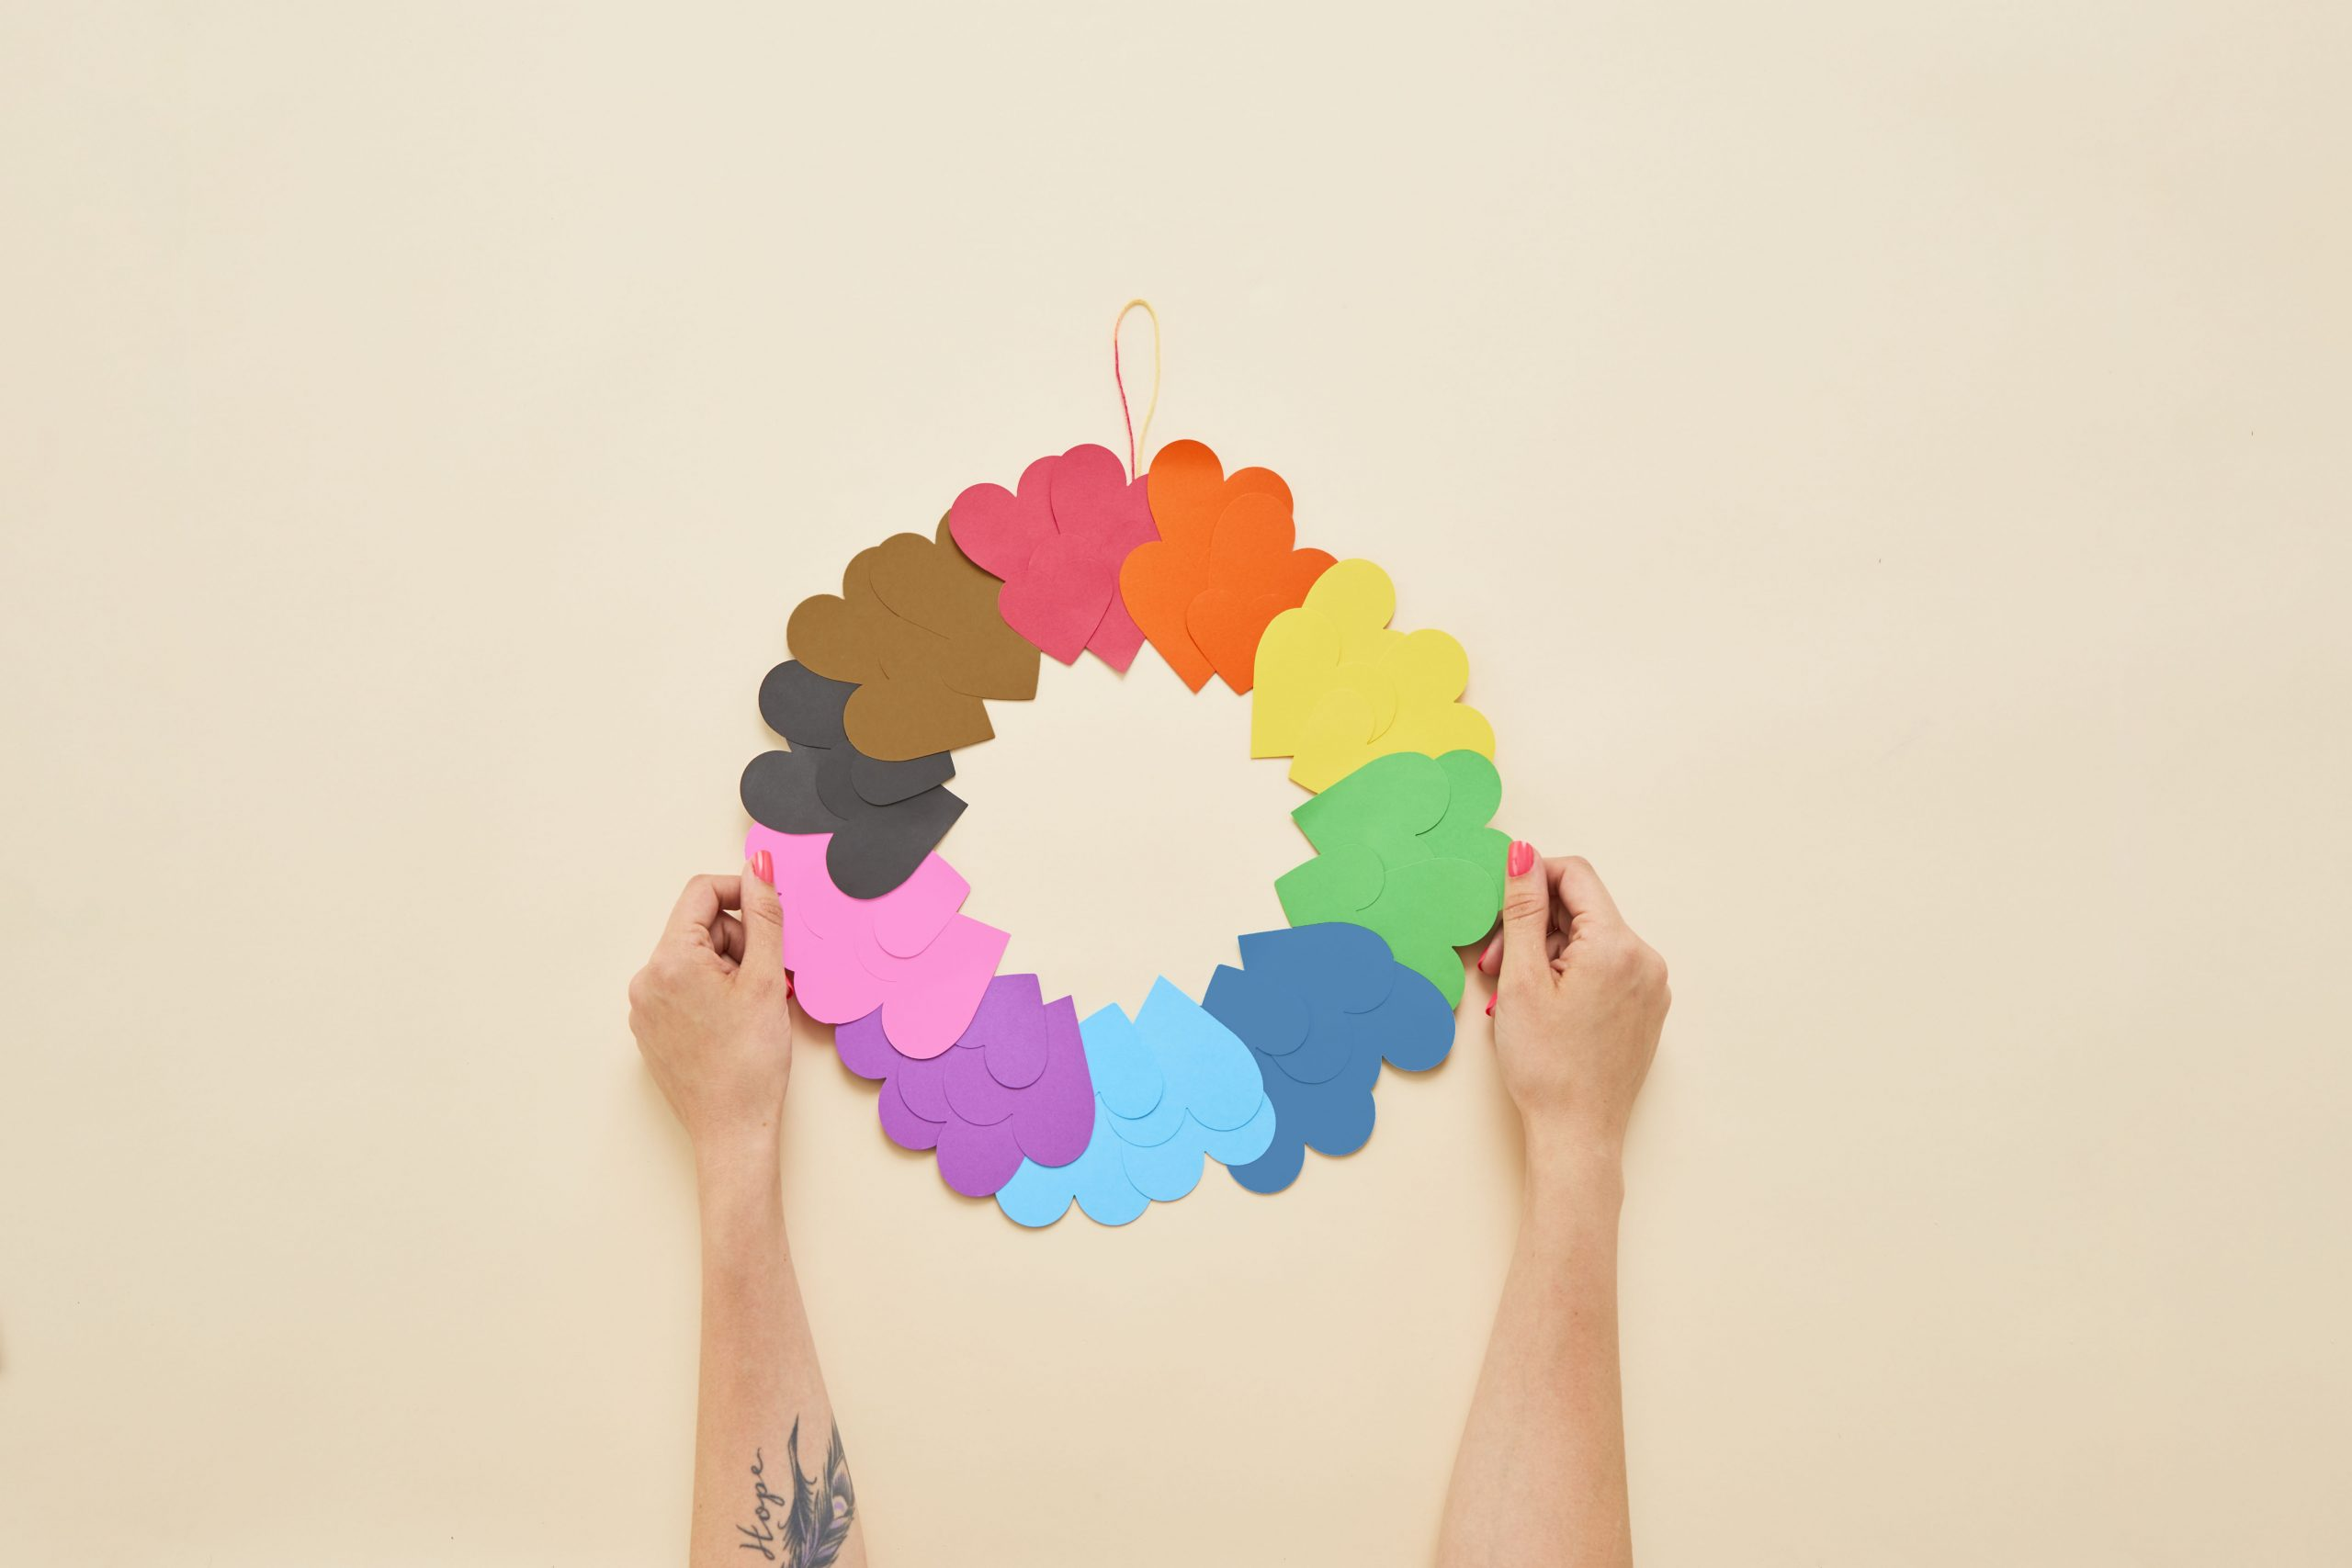 DIY Rainbow Heart Paper Craft Project for Pride